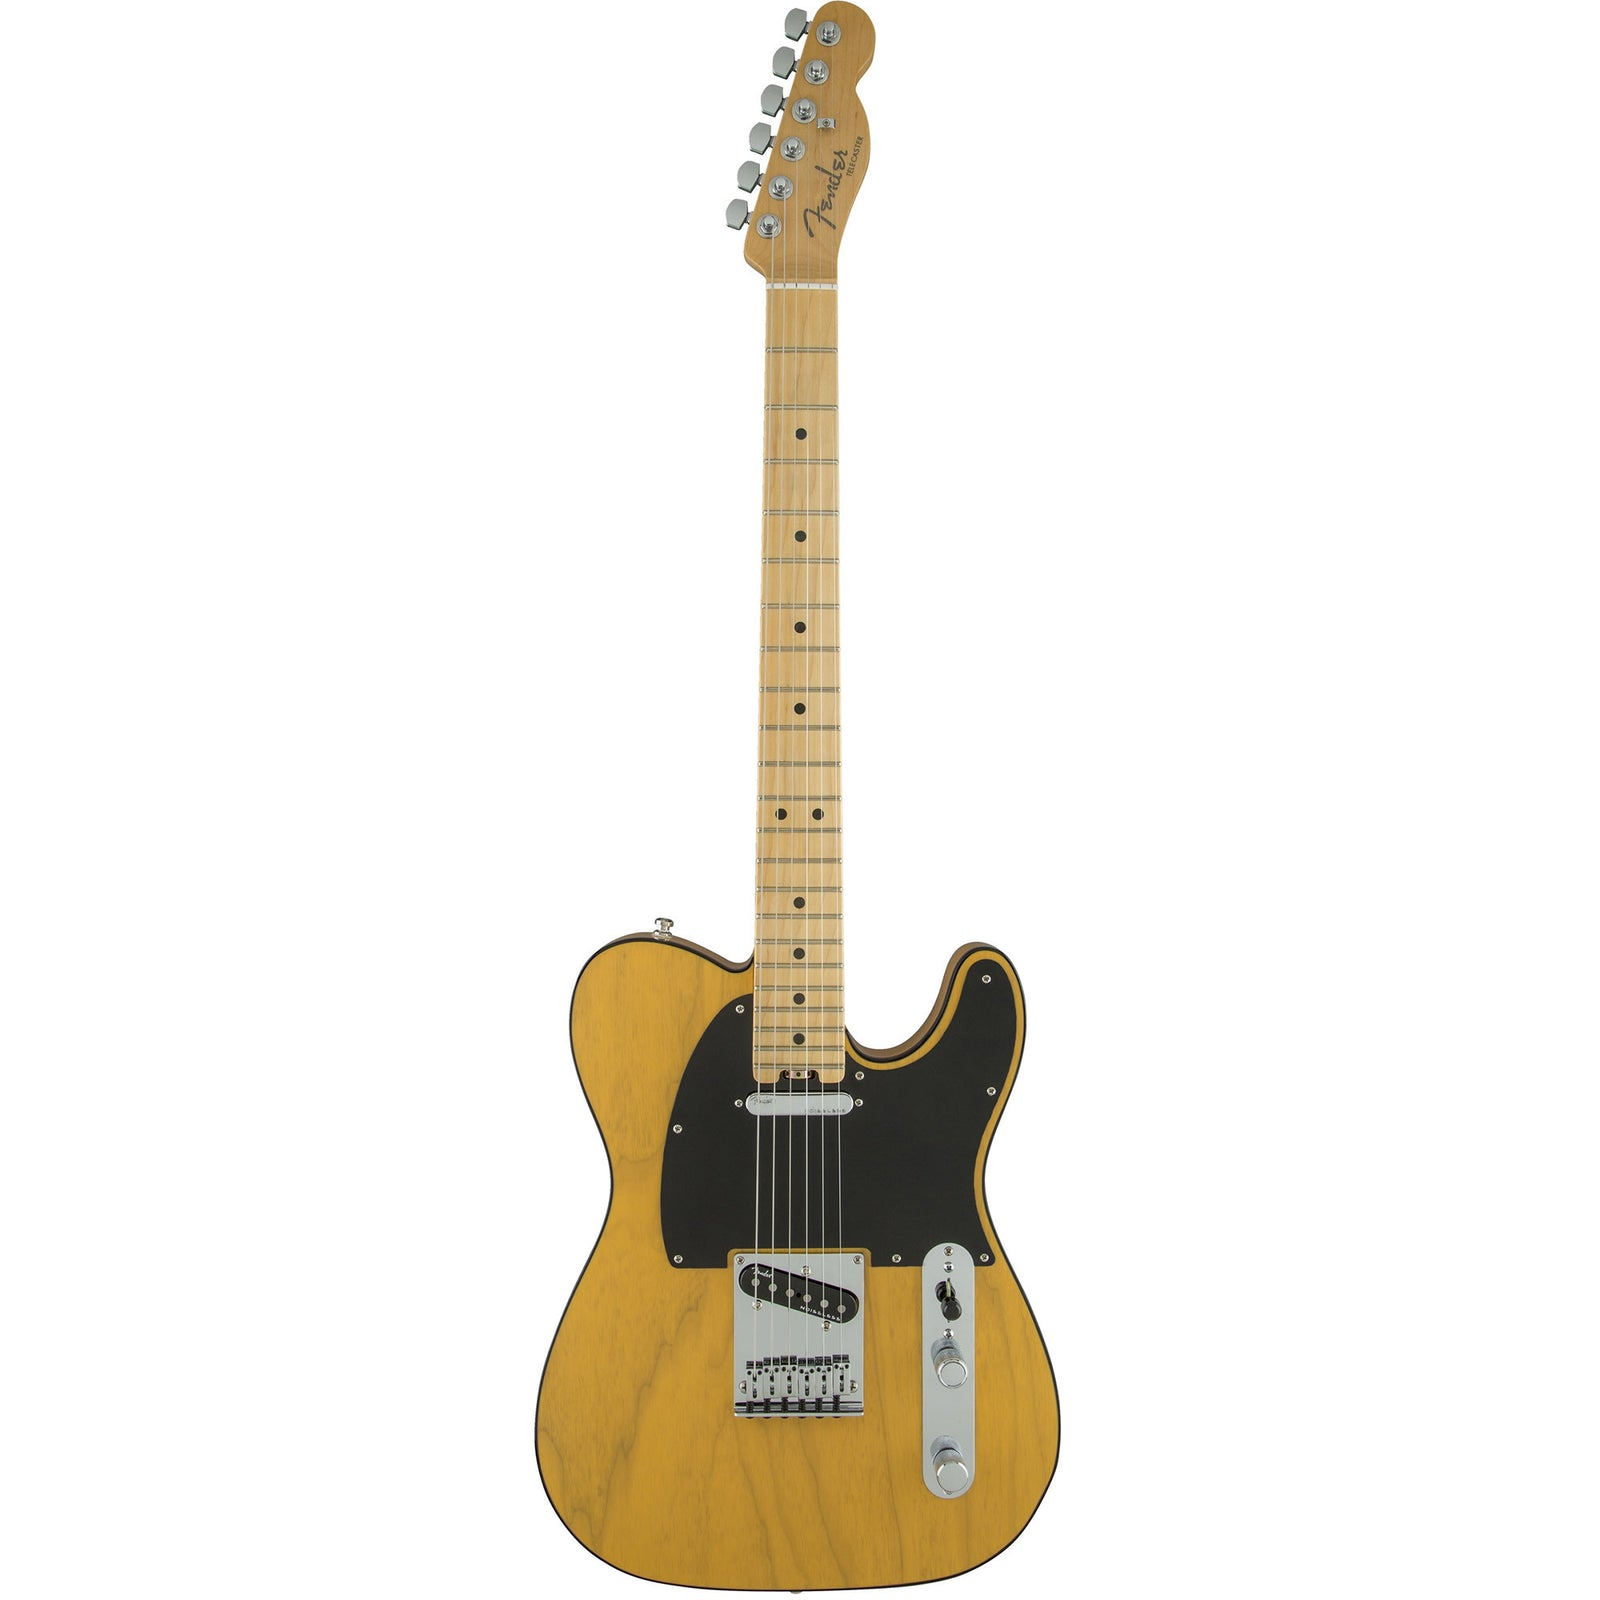 Fender American Elite Telecaster - Maple Fingerboard - Butterscotch Blonde Ash